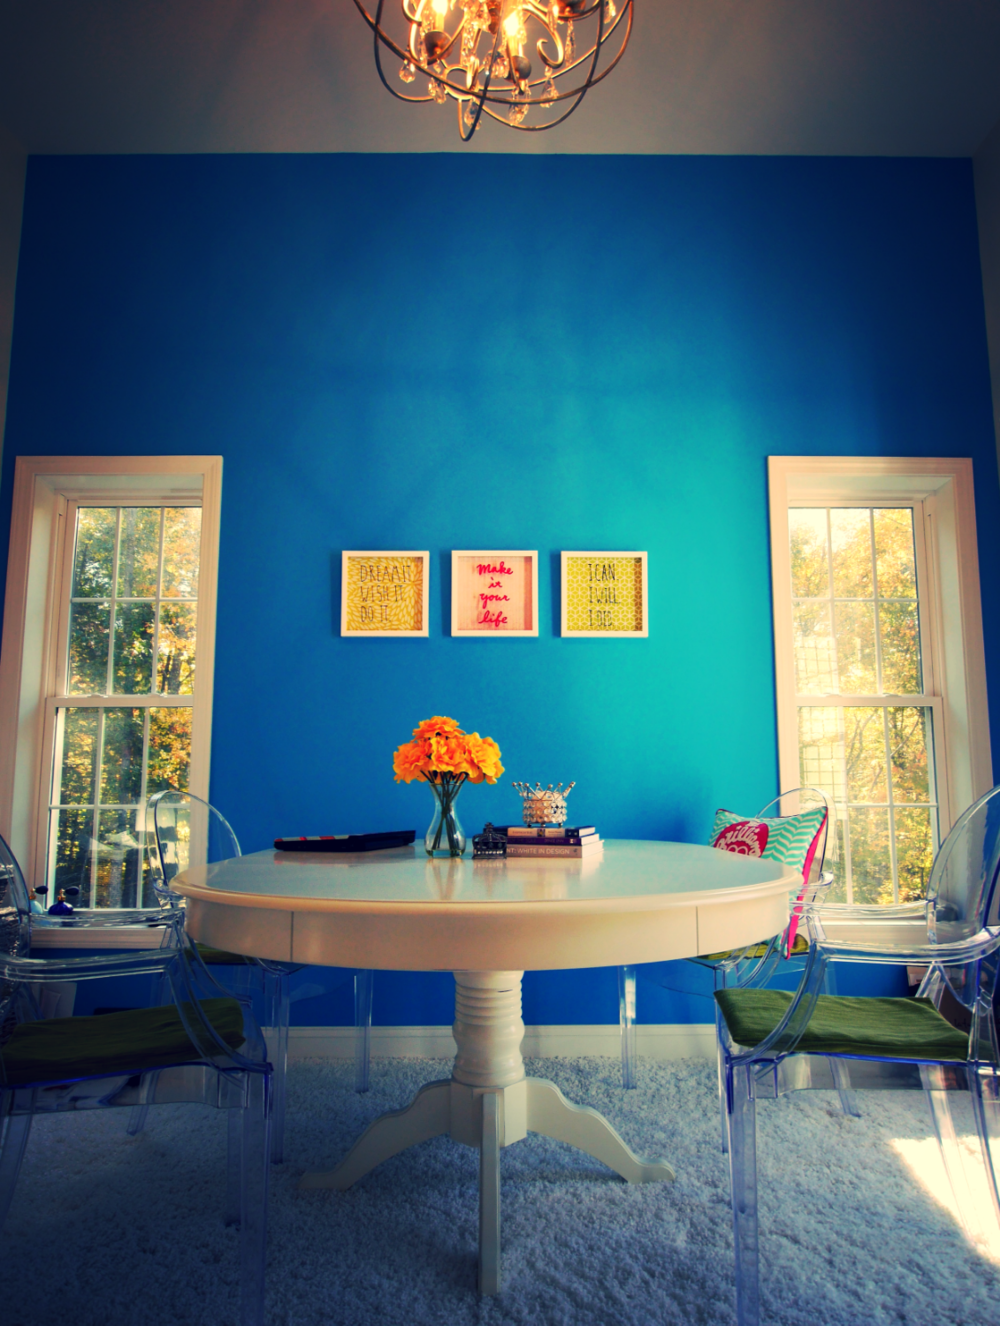 I\u0027ve done this in my own home office/study. (Pictured below) I couldn\u0027t resist the energizing color especially a statement with 11 ft ceilings. & My Brilliant Lifestyle